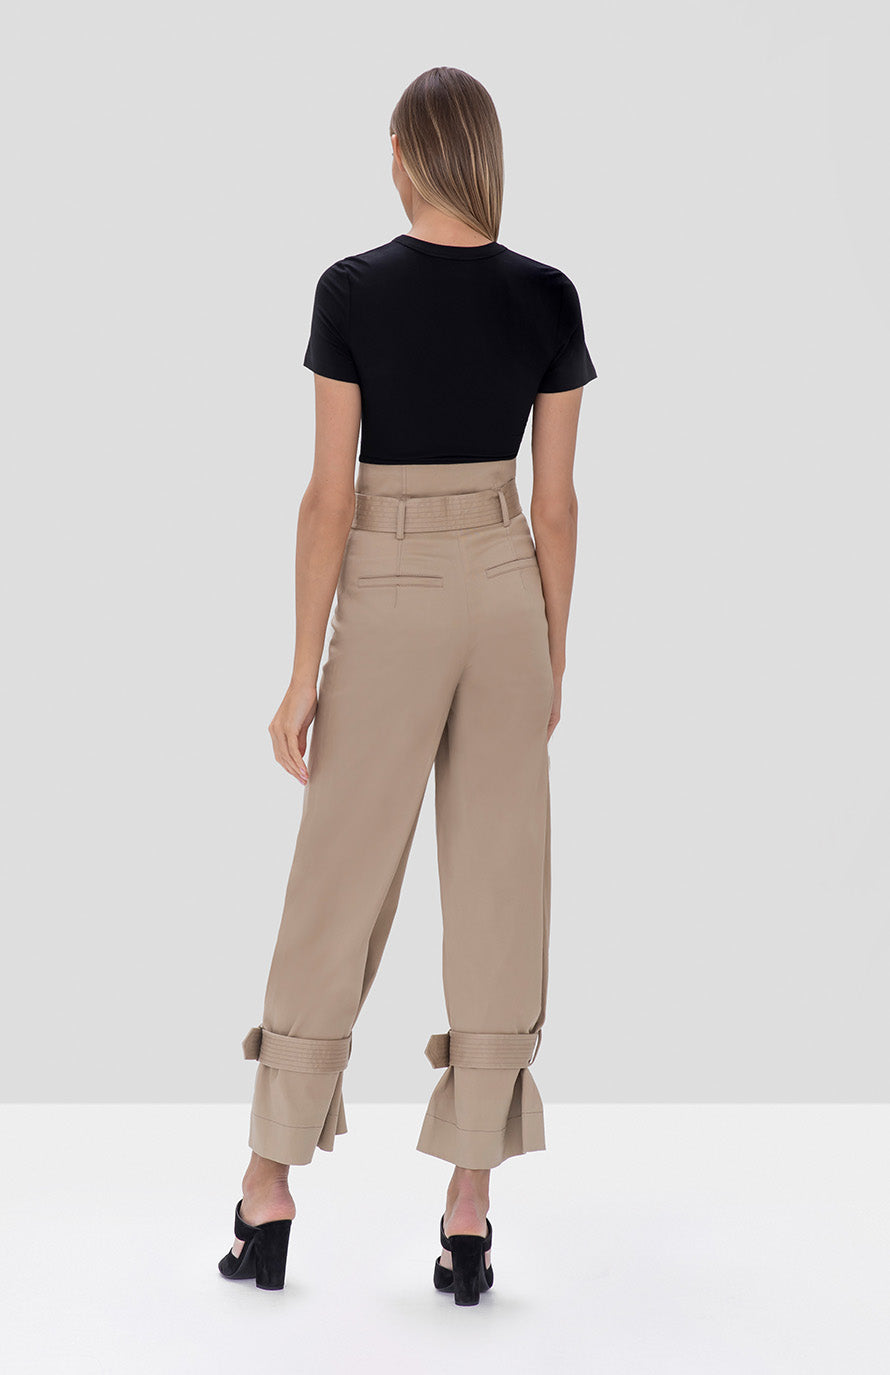 soli top black vicente pant tan - Rear View